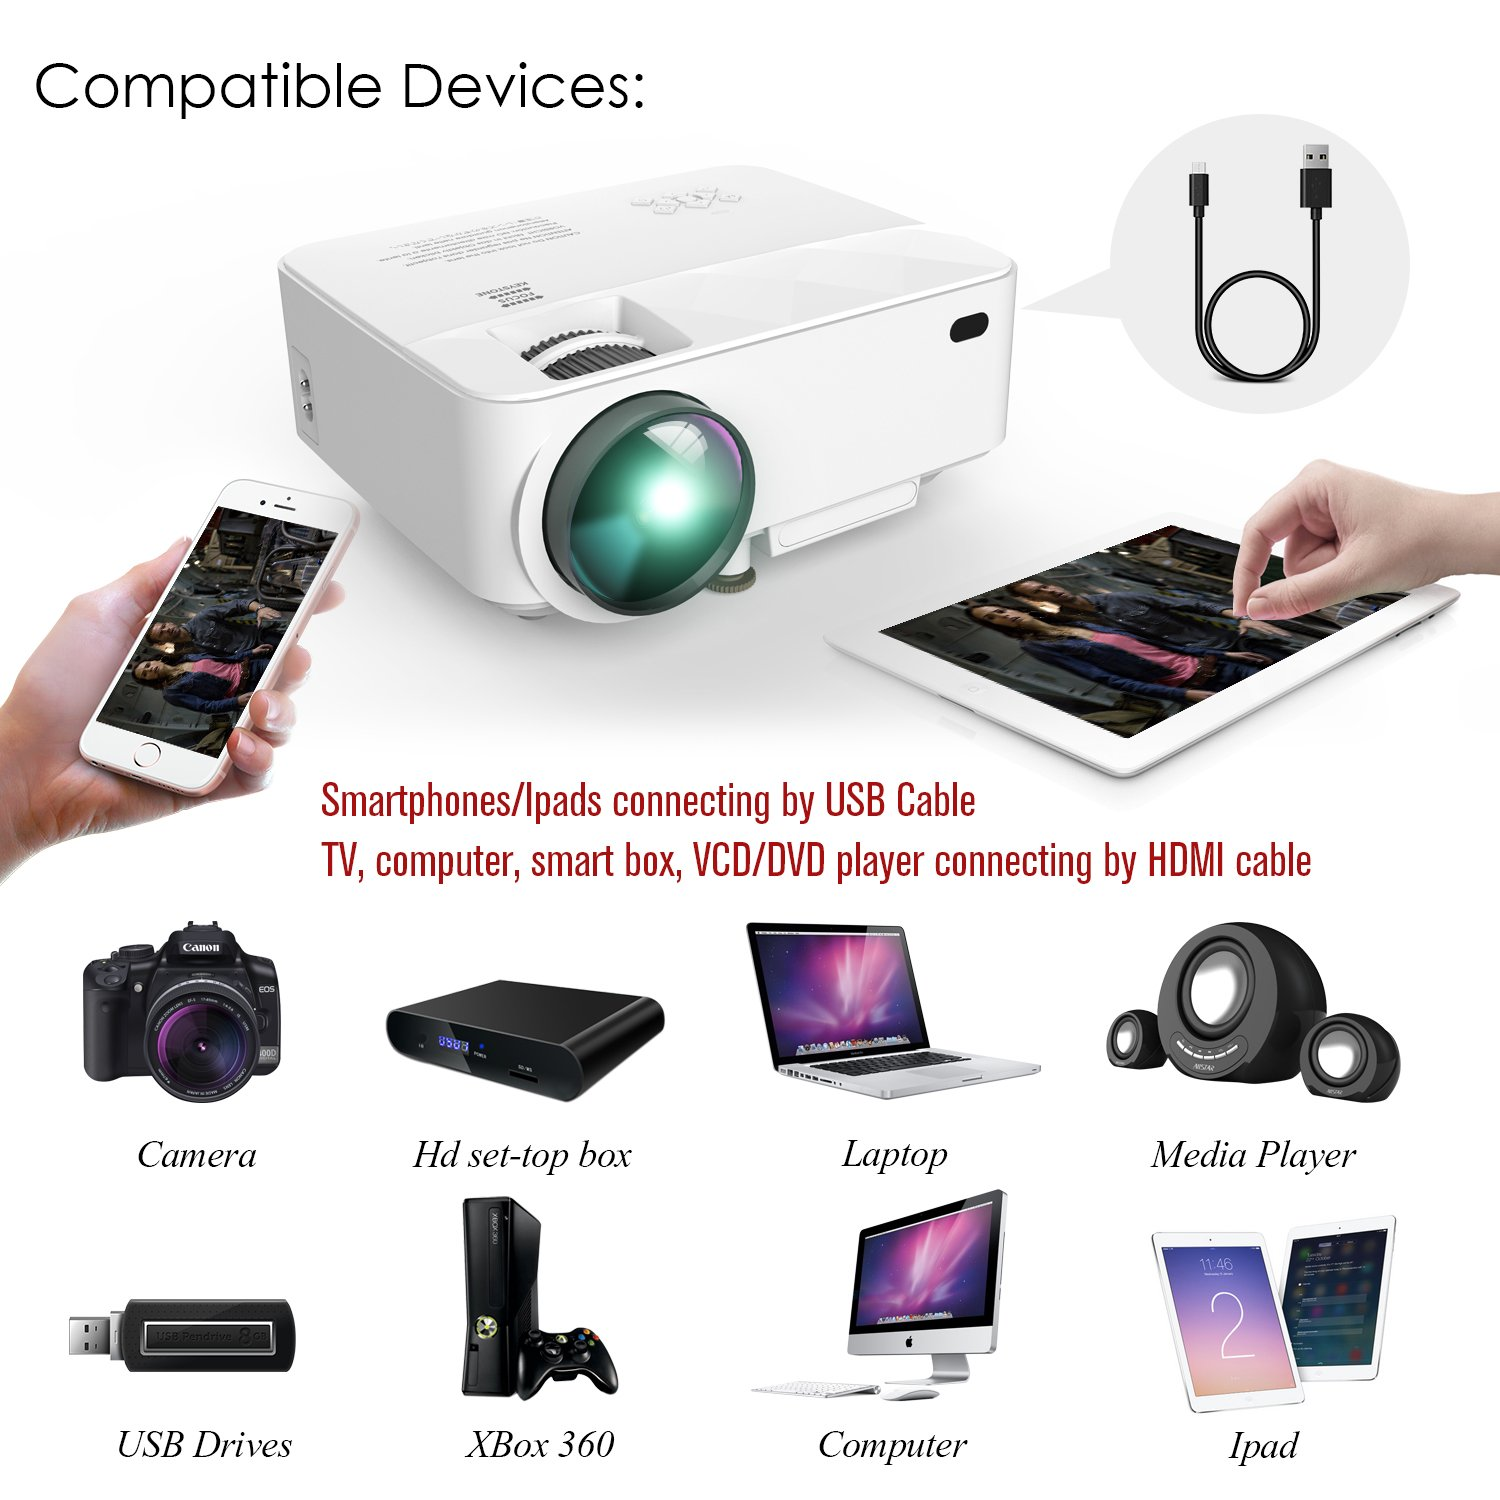 DBPOWER T21 Upgraded LED Projector,1800 Lumens Multimedia Home Theater Video Projector Supporting 1080P, HDMI, USB, SD Card, VGA, AV for Home Cinema, TV, Laptops, Games, Smartphones & iPad by DBPOWER (Image #5)